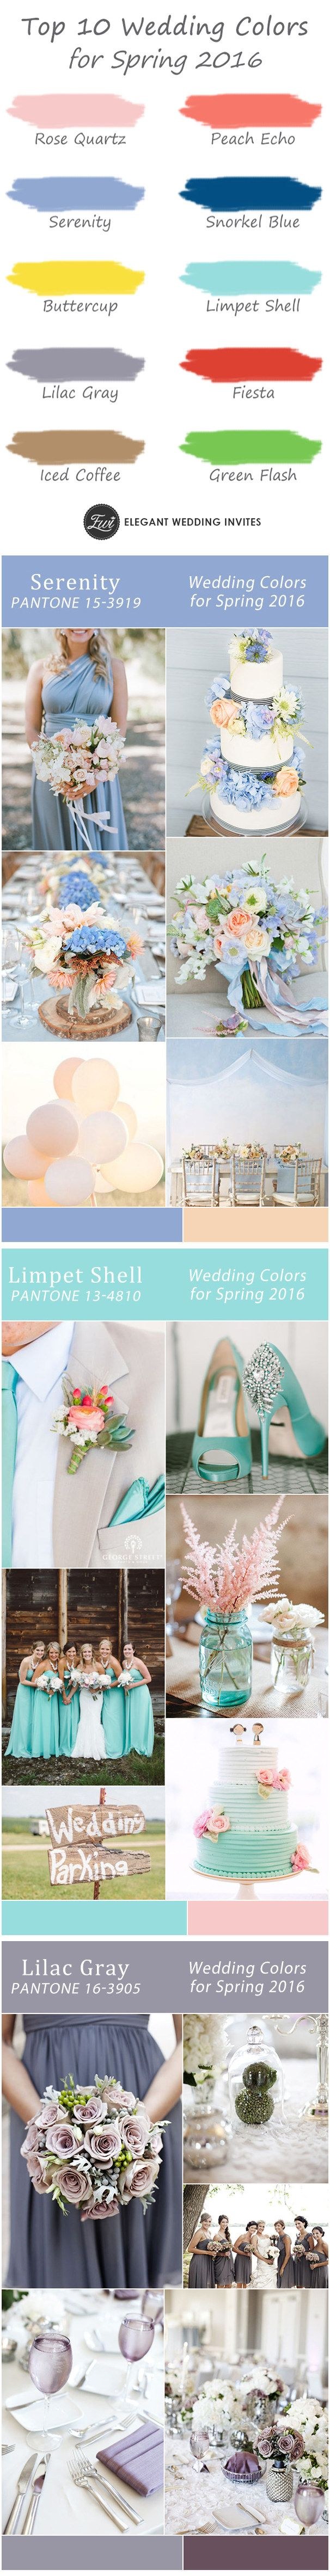 gorgeous 10 wedding color ideas for spring 2016 wedding trends-serenity light blue, peach echo coral, lilac gray, iced coffee and more